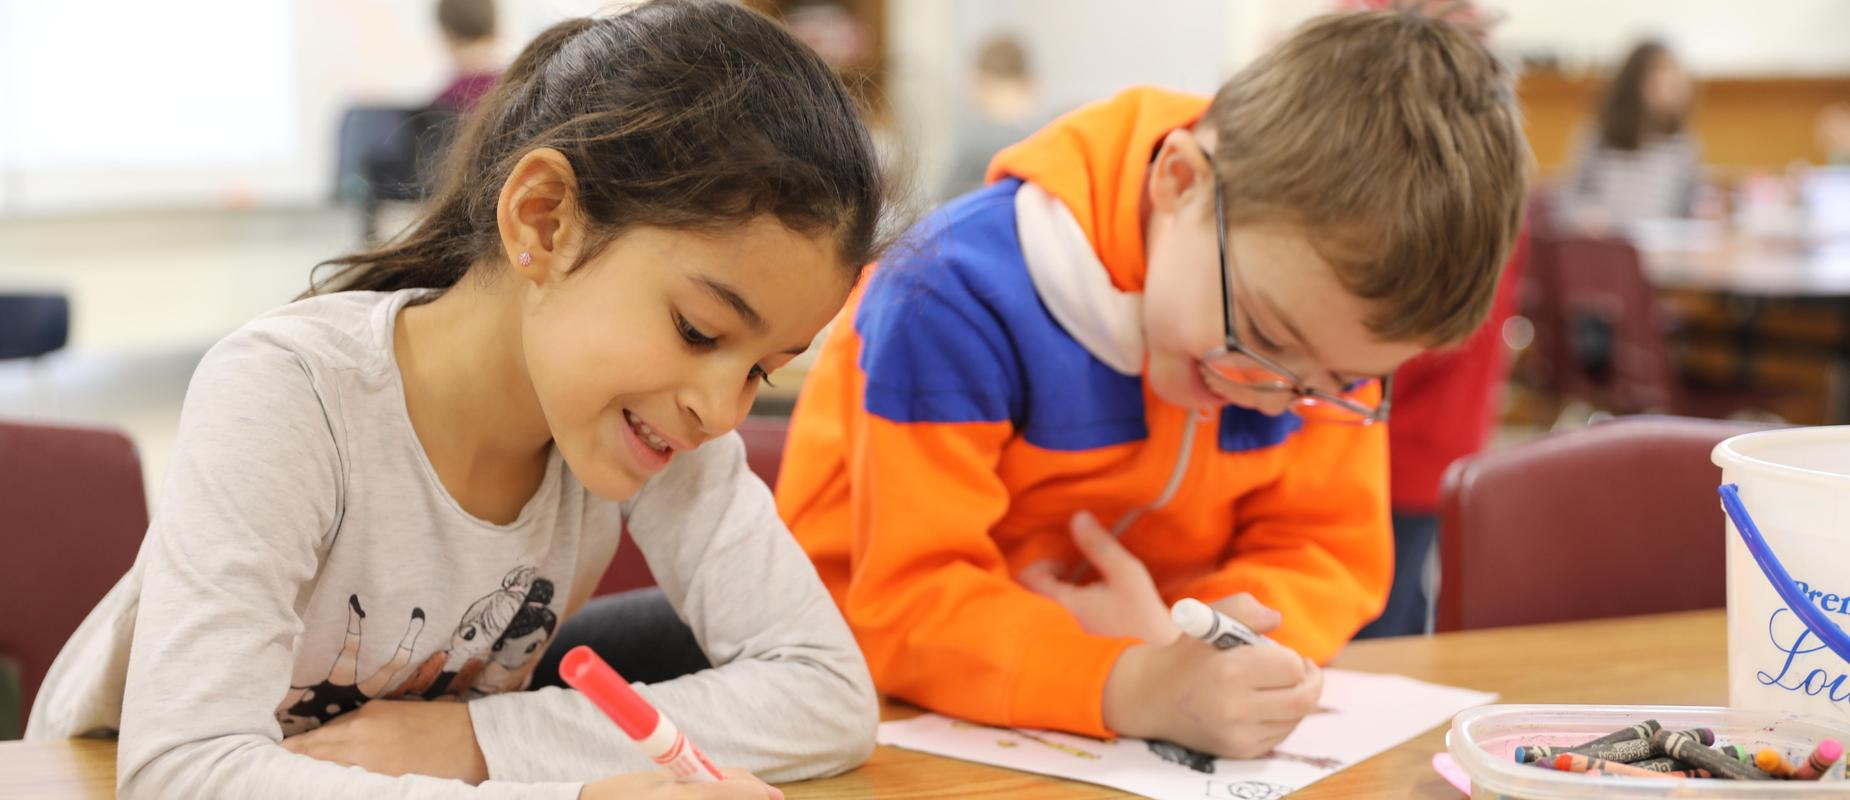 boy and girl color their papers at a table